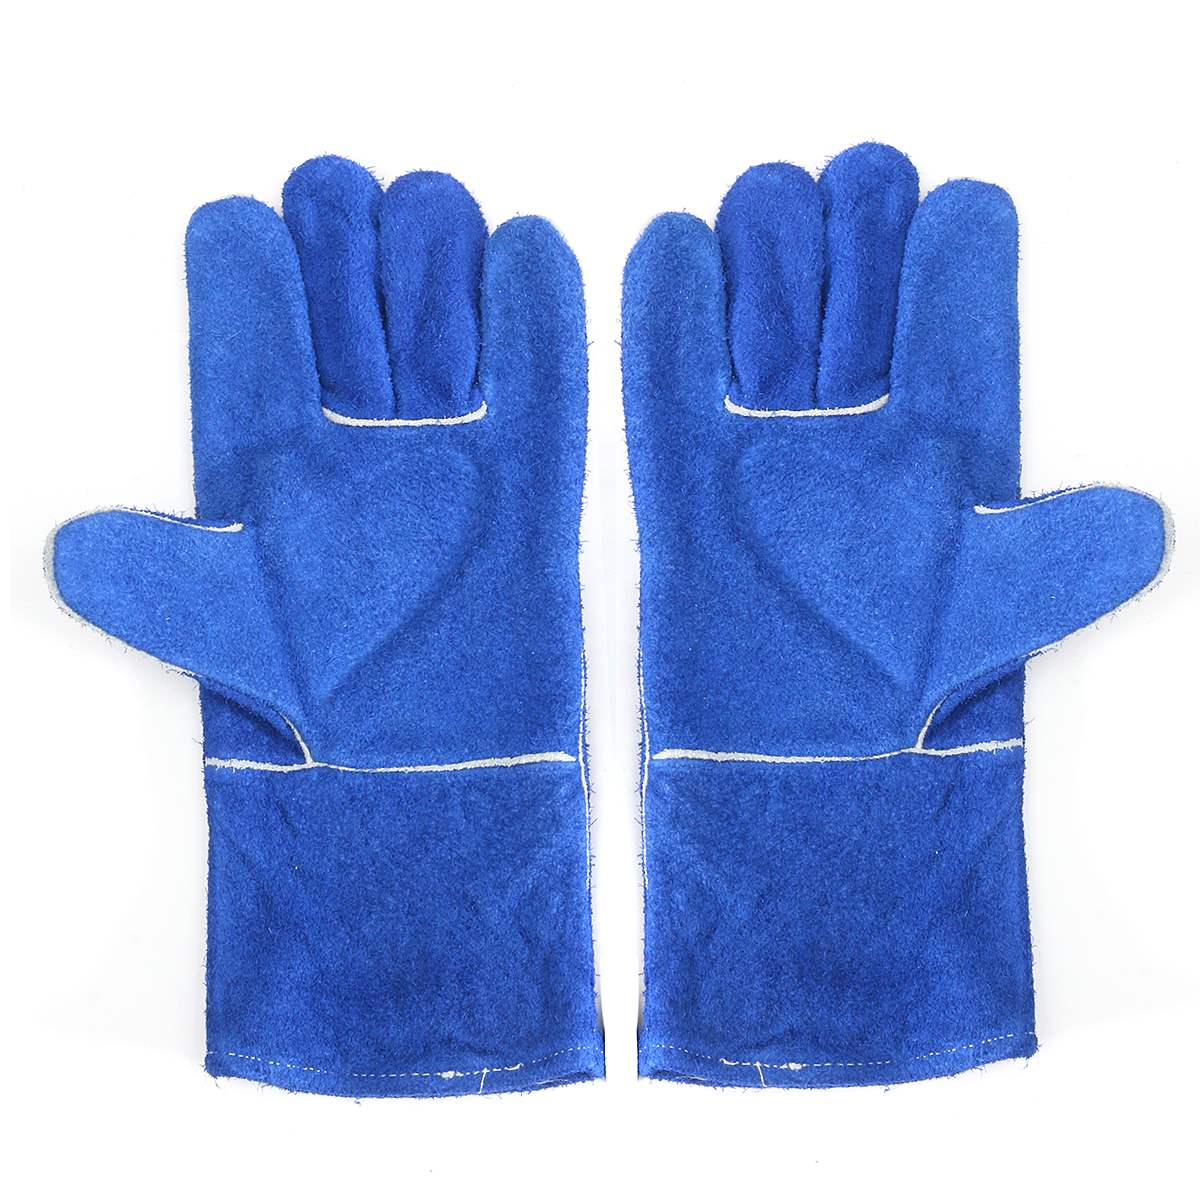 Blue Woodburner Gloves Long Lined Welders Gauntlets Log Fire High Temp Stove XL  Workplace Safety Gloves manitobah рукавицы fur gauntlets